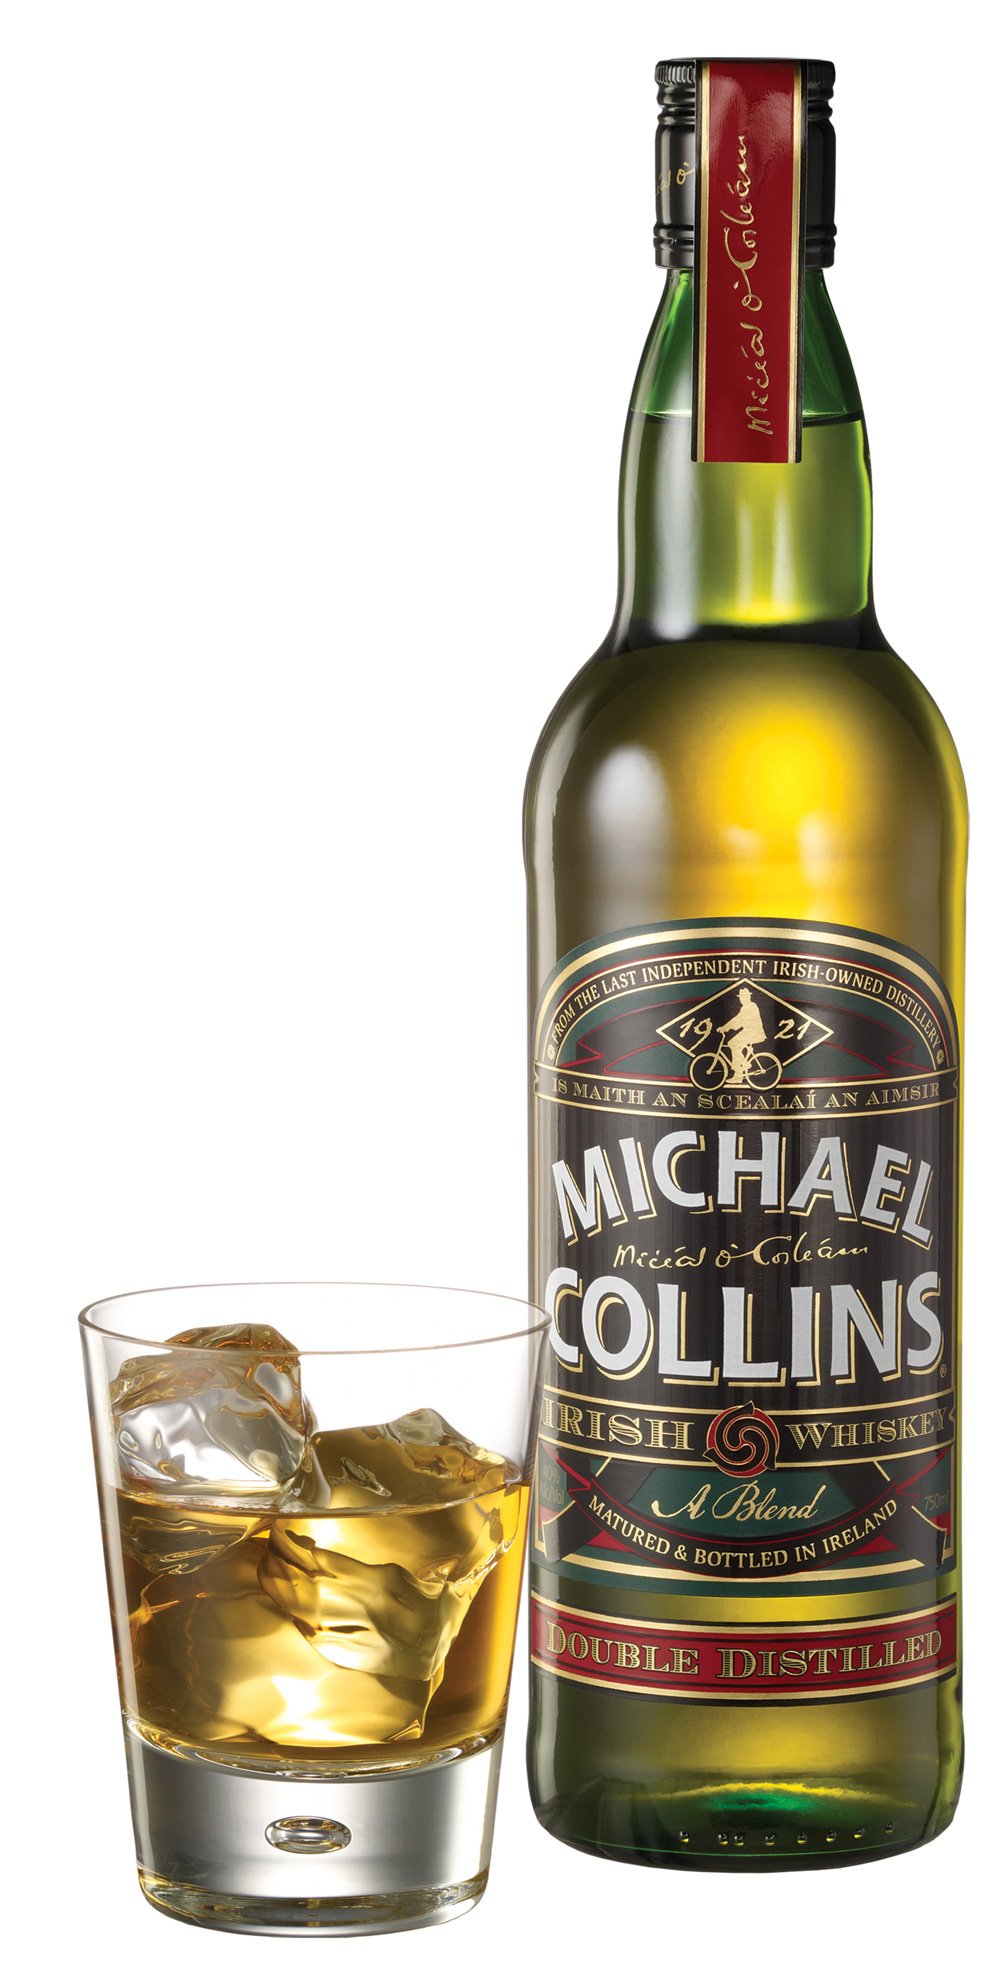 Michael Collins 10 Year Old Single Malt Irish Whiskey